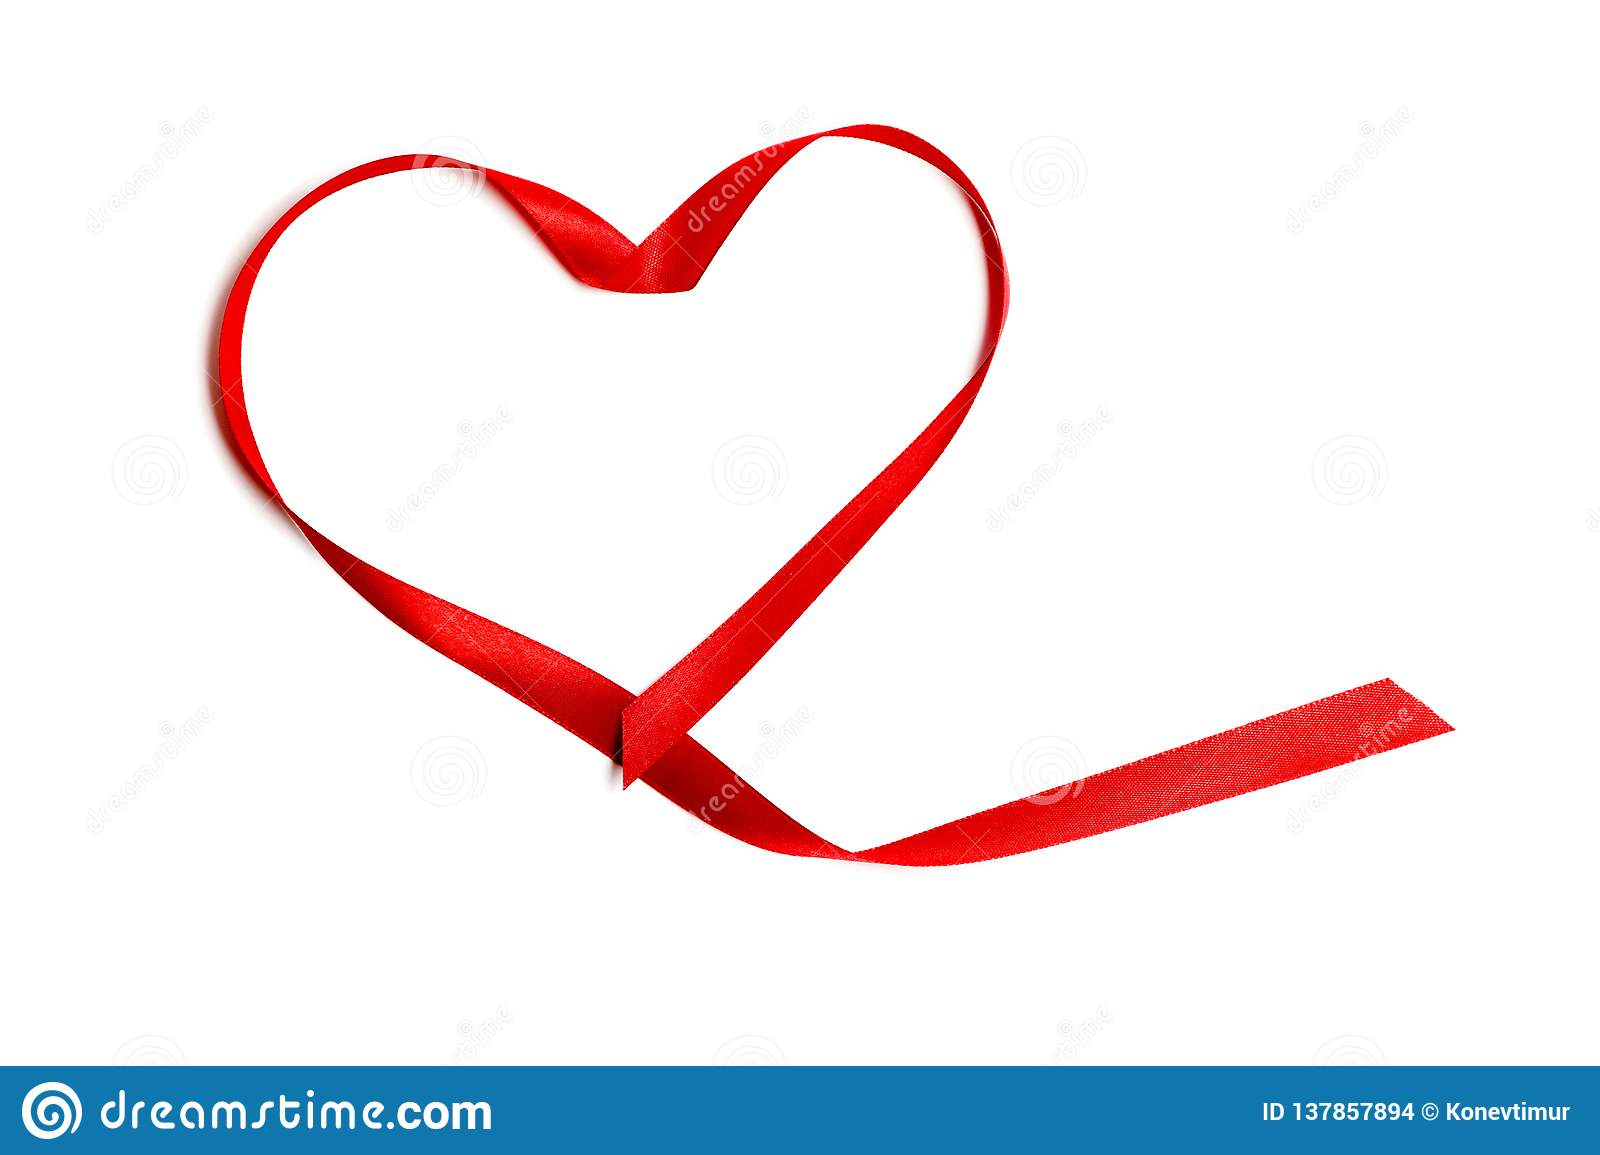 Closeup red satin ribbon or tape in heart shape, isolated on white background. Concept Valentine`s Day, wedding anniversary,